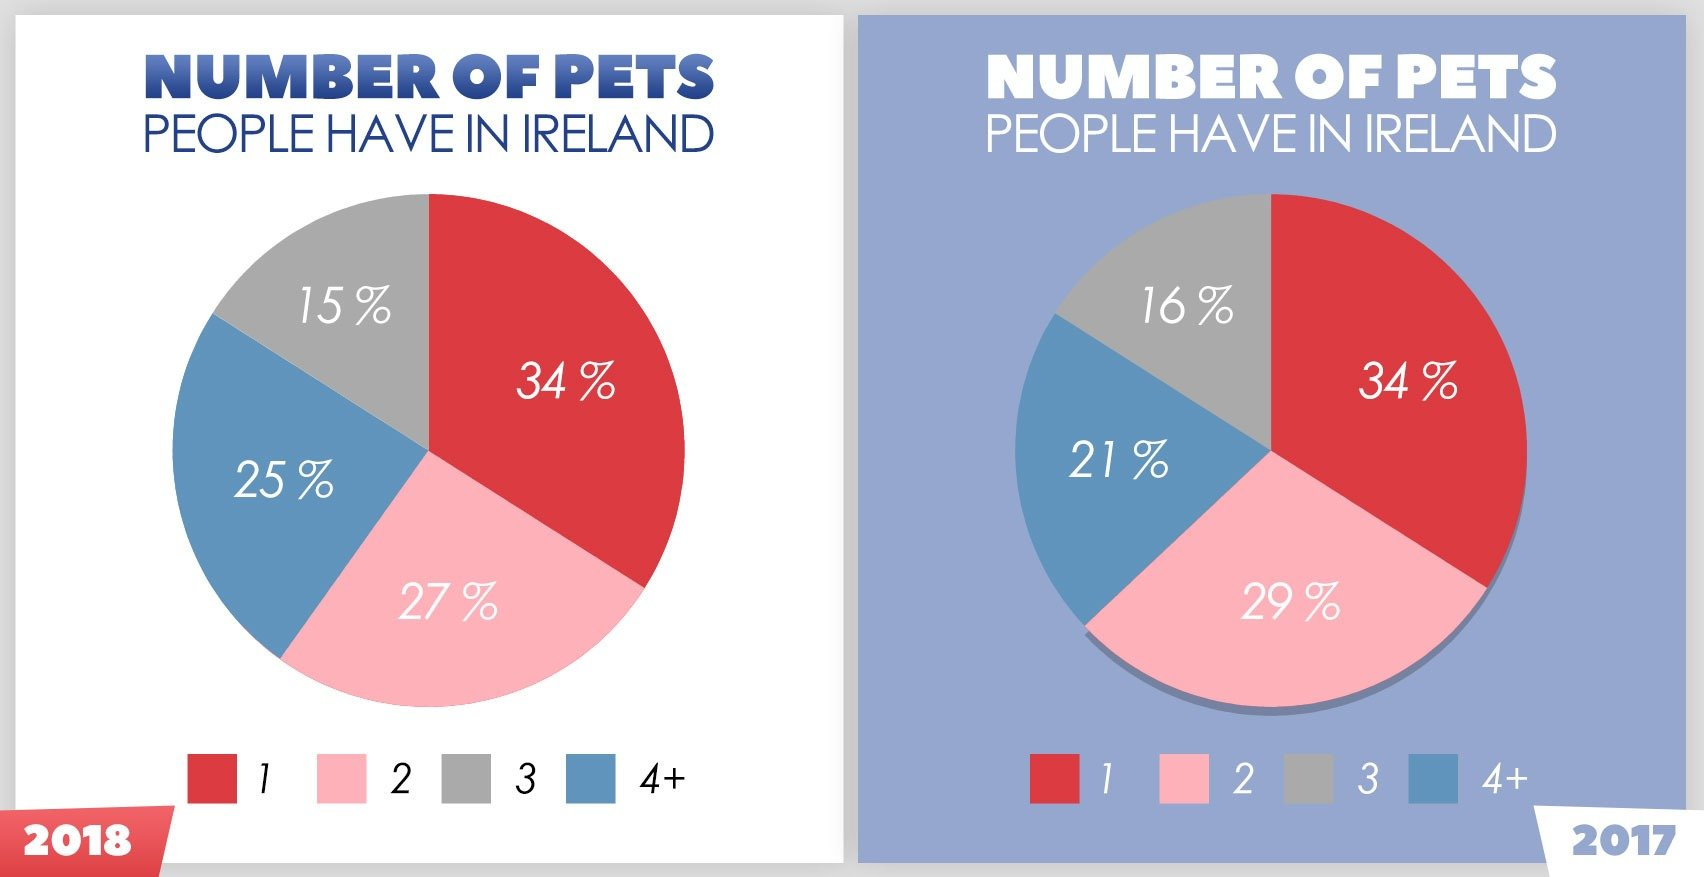 Number Of Pets Per Household In Ireland